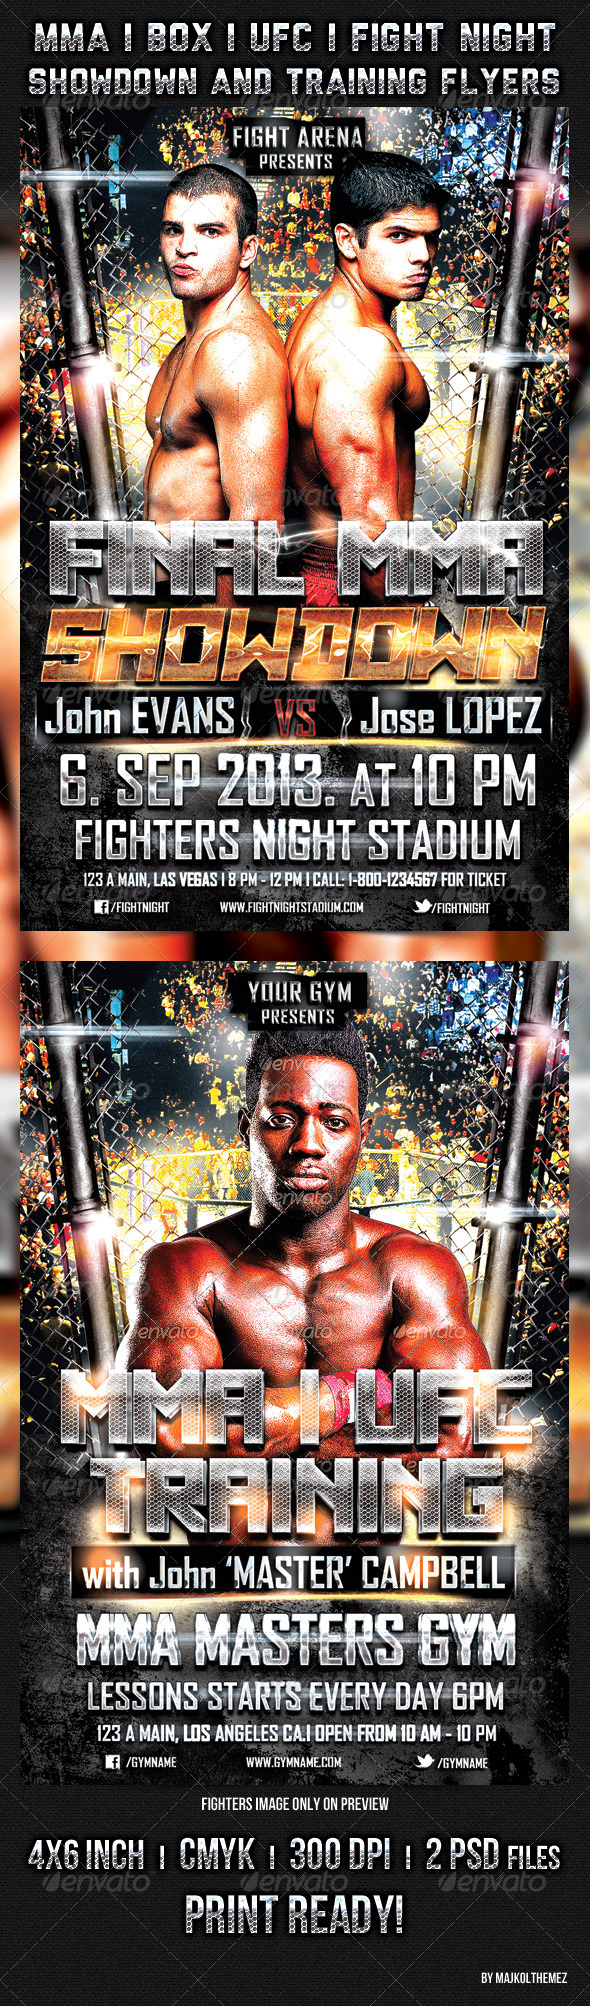 MmaUfcBox Showdown And Training Flyers  Mma Ufc And Flyer Template